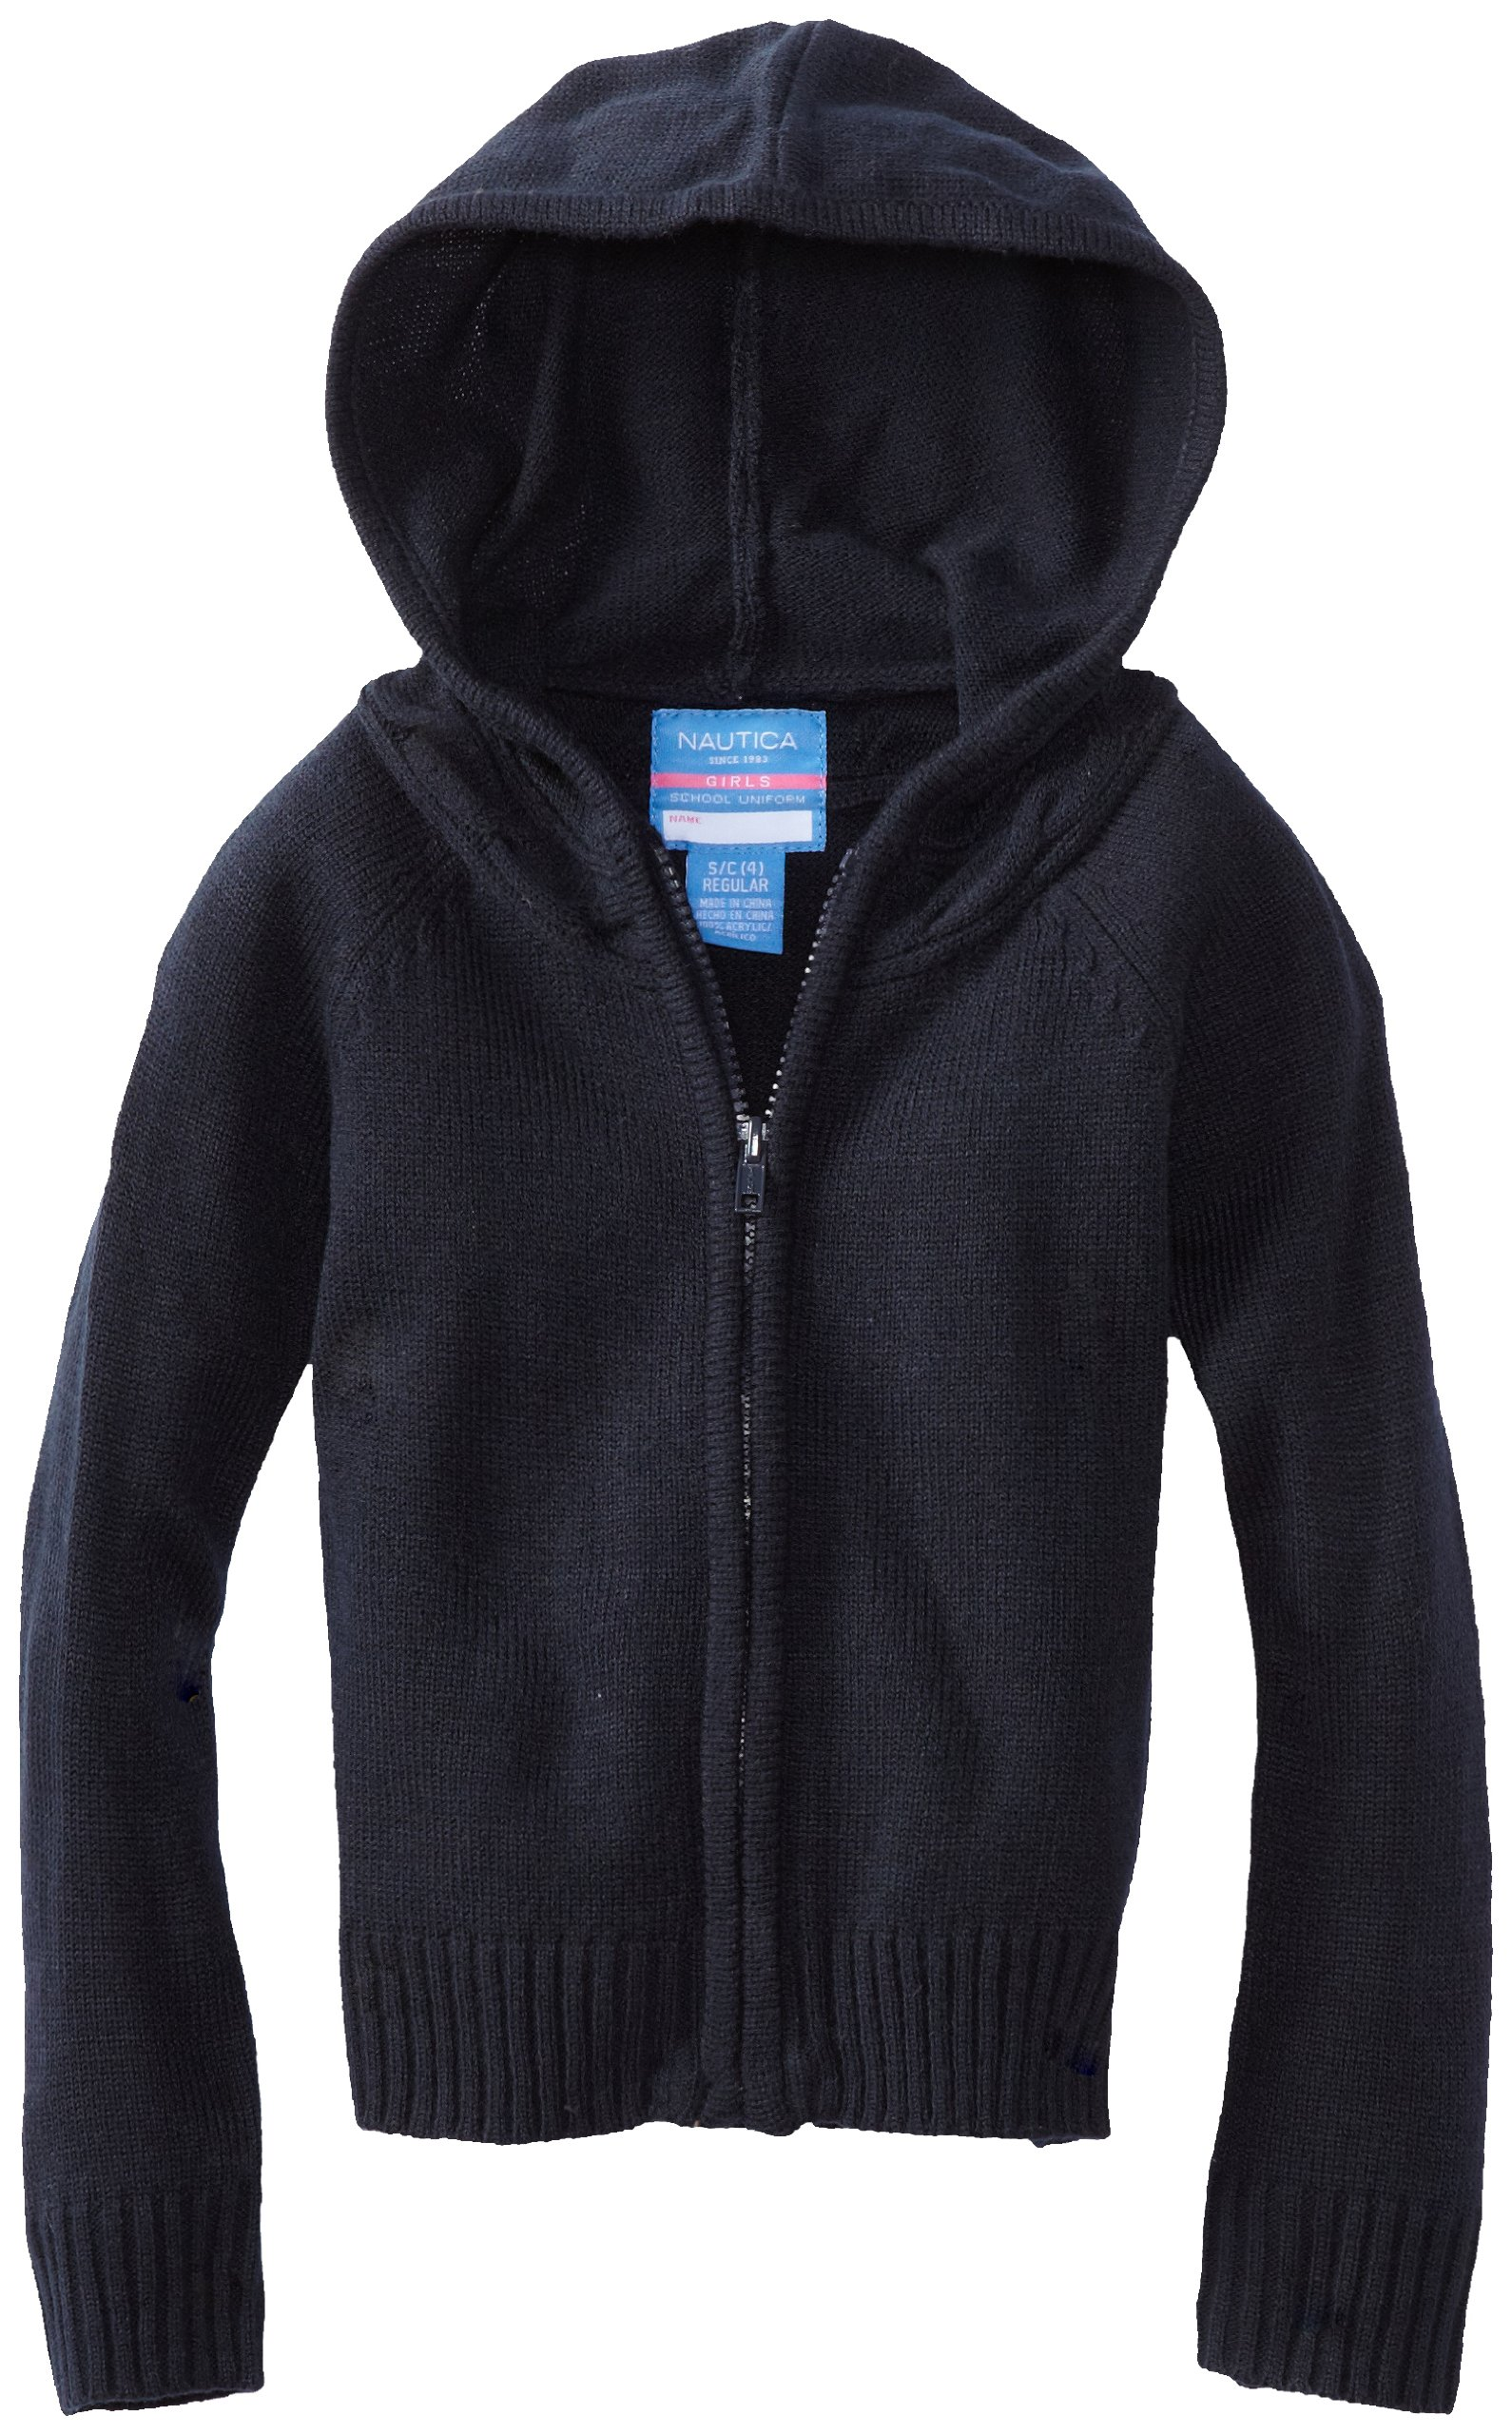 Nautica Little Girls'  Uniform Sweater Hoody, Navy, Small